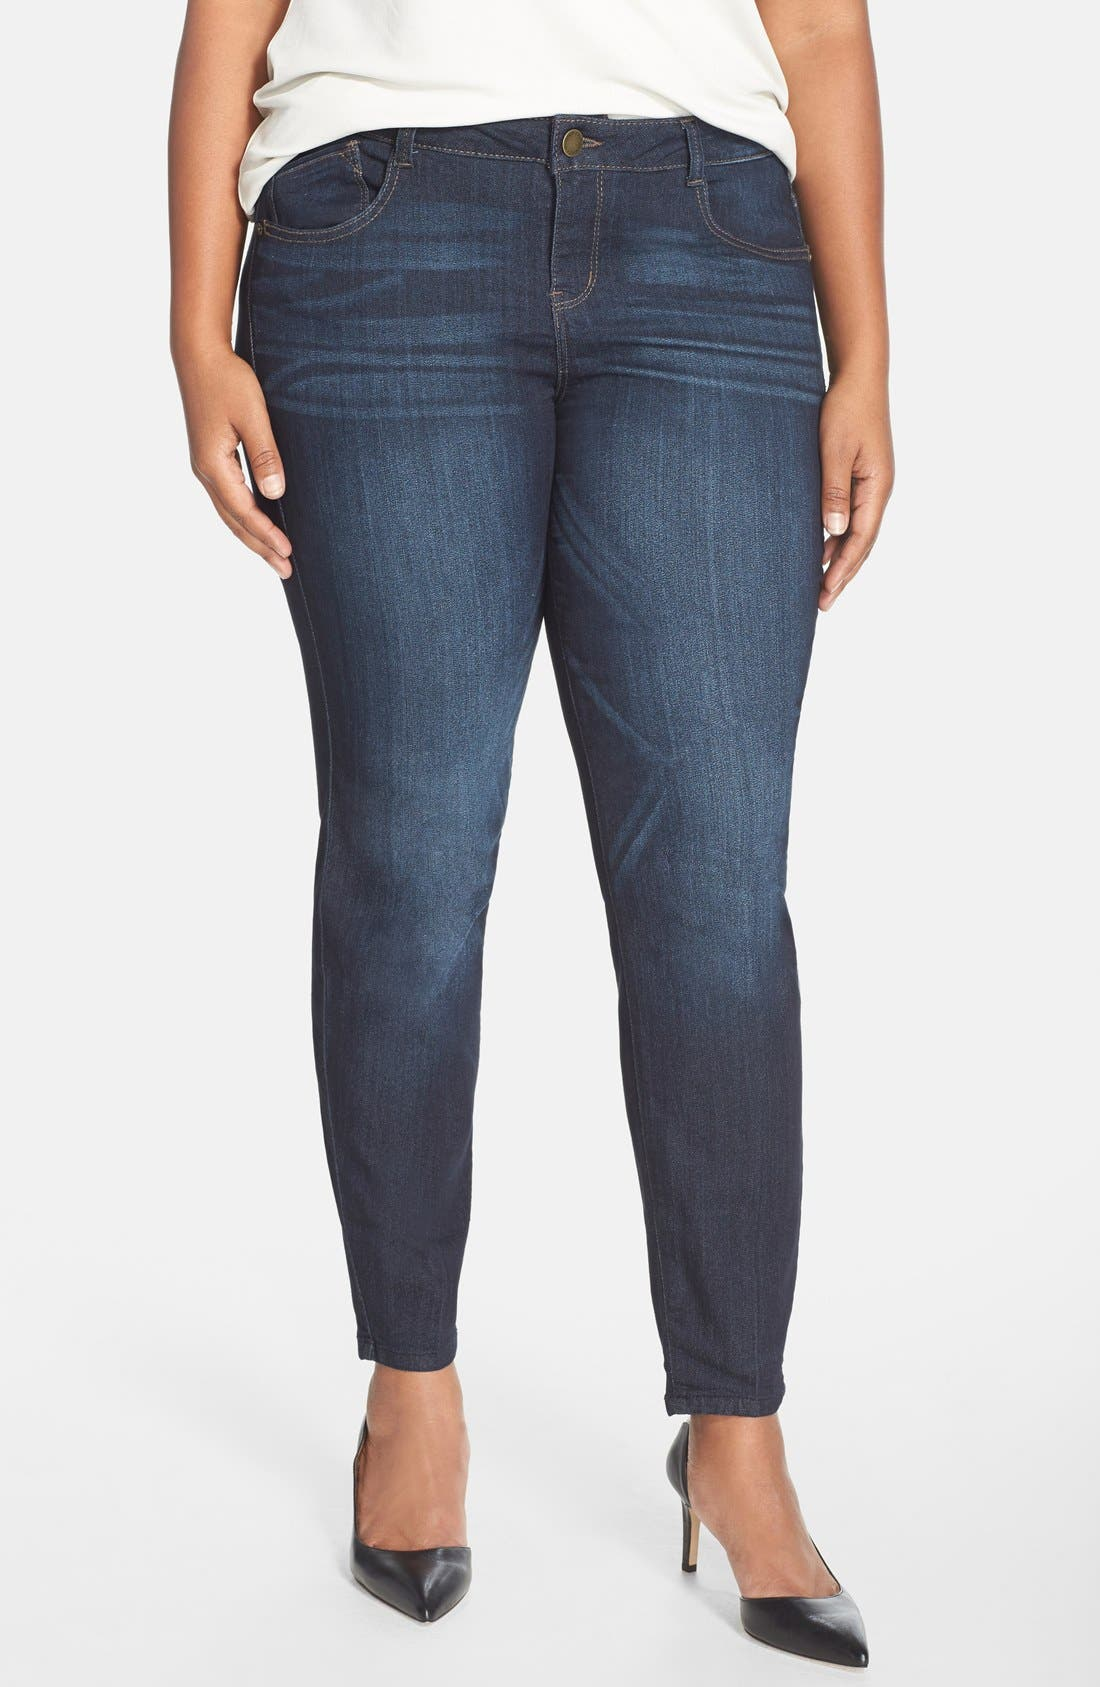 Wit & Wisdom 'Super Smooth' Stretch Skinny Jeans (Dark Navy) (Plus Size) (Nordstrom Exclusive)